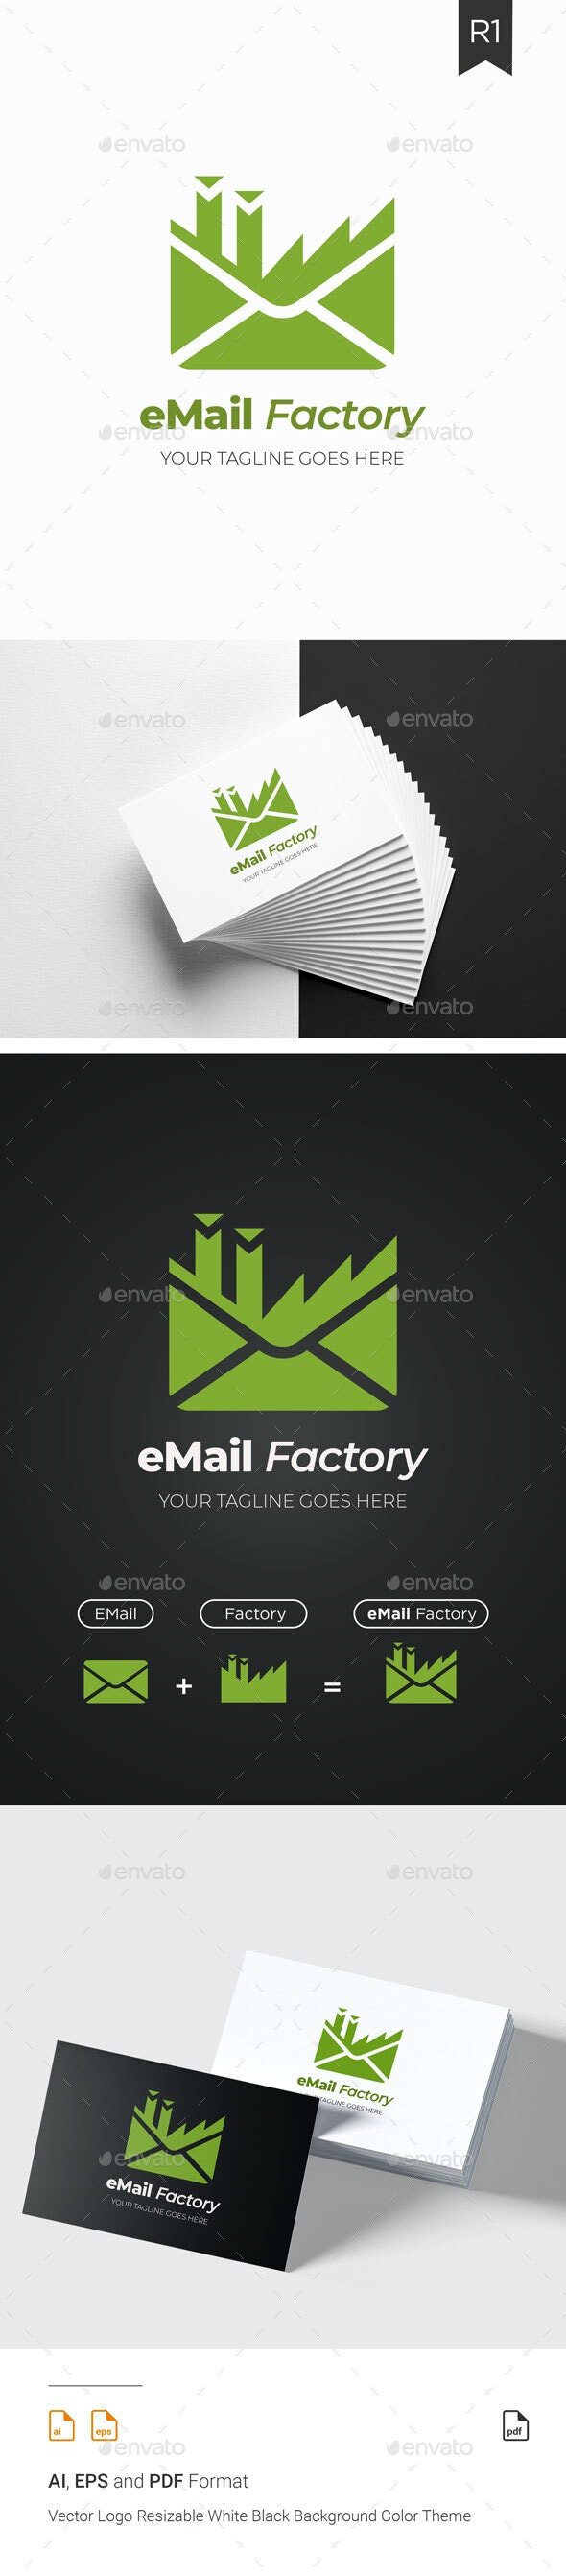 eMail Factory - Abstract Logo Templates